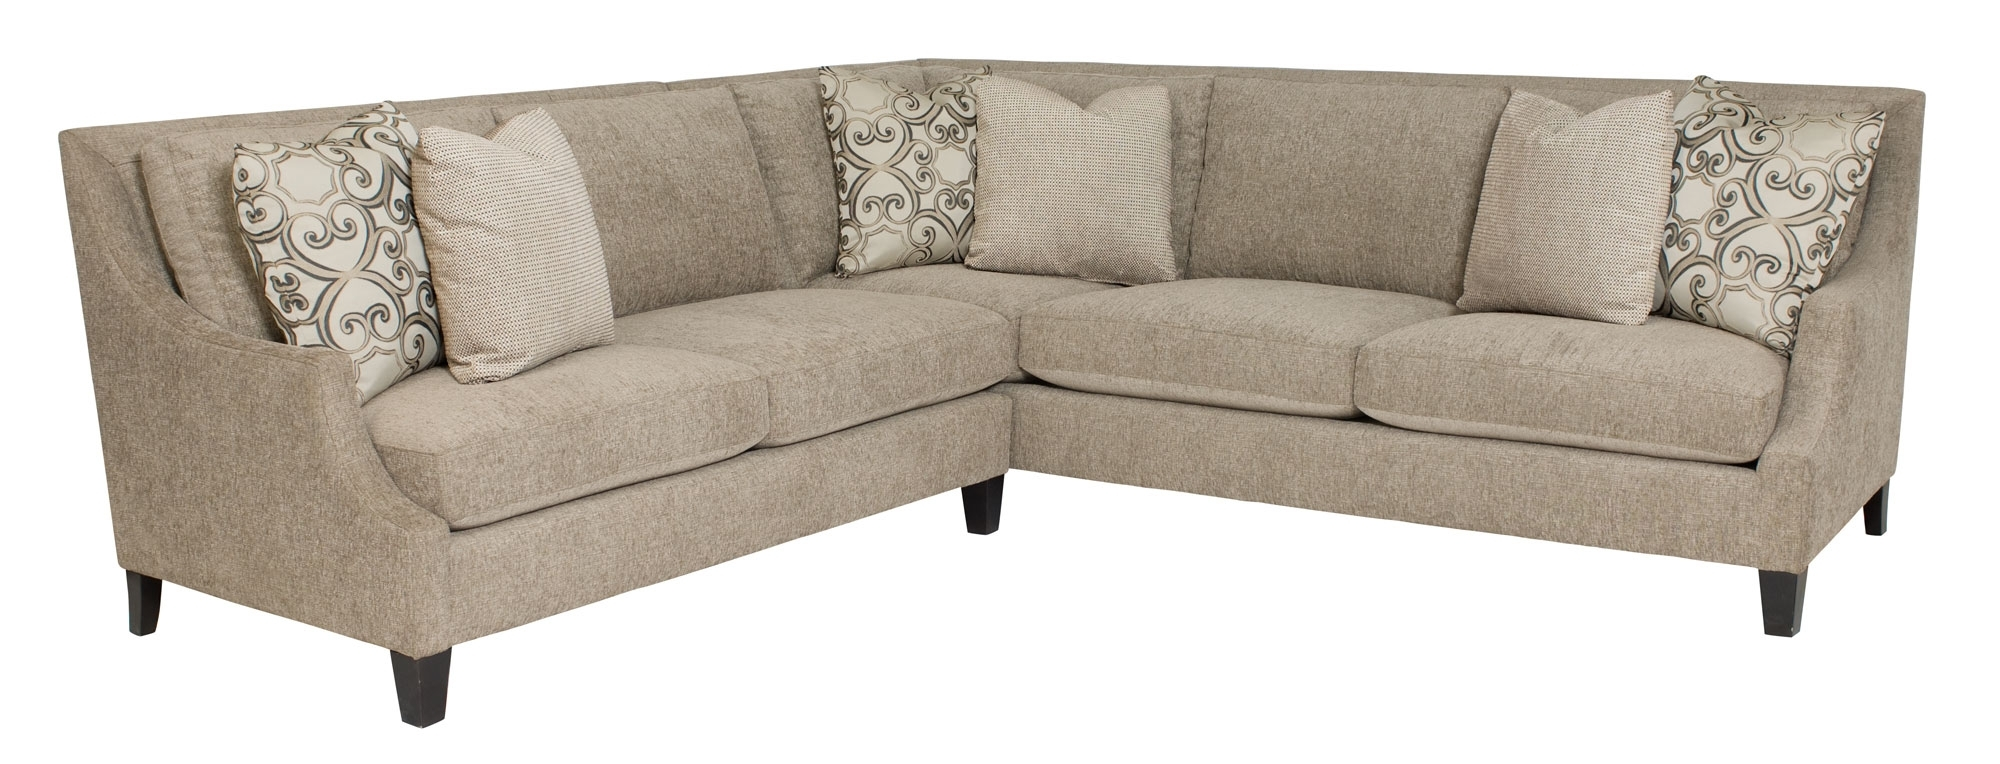 Furniture : French And English Sofa Sofa Furniture Ottawa Sofa With Kijiji Ottawa Sectional Sofas (View 10 of 10)